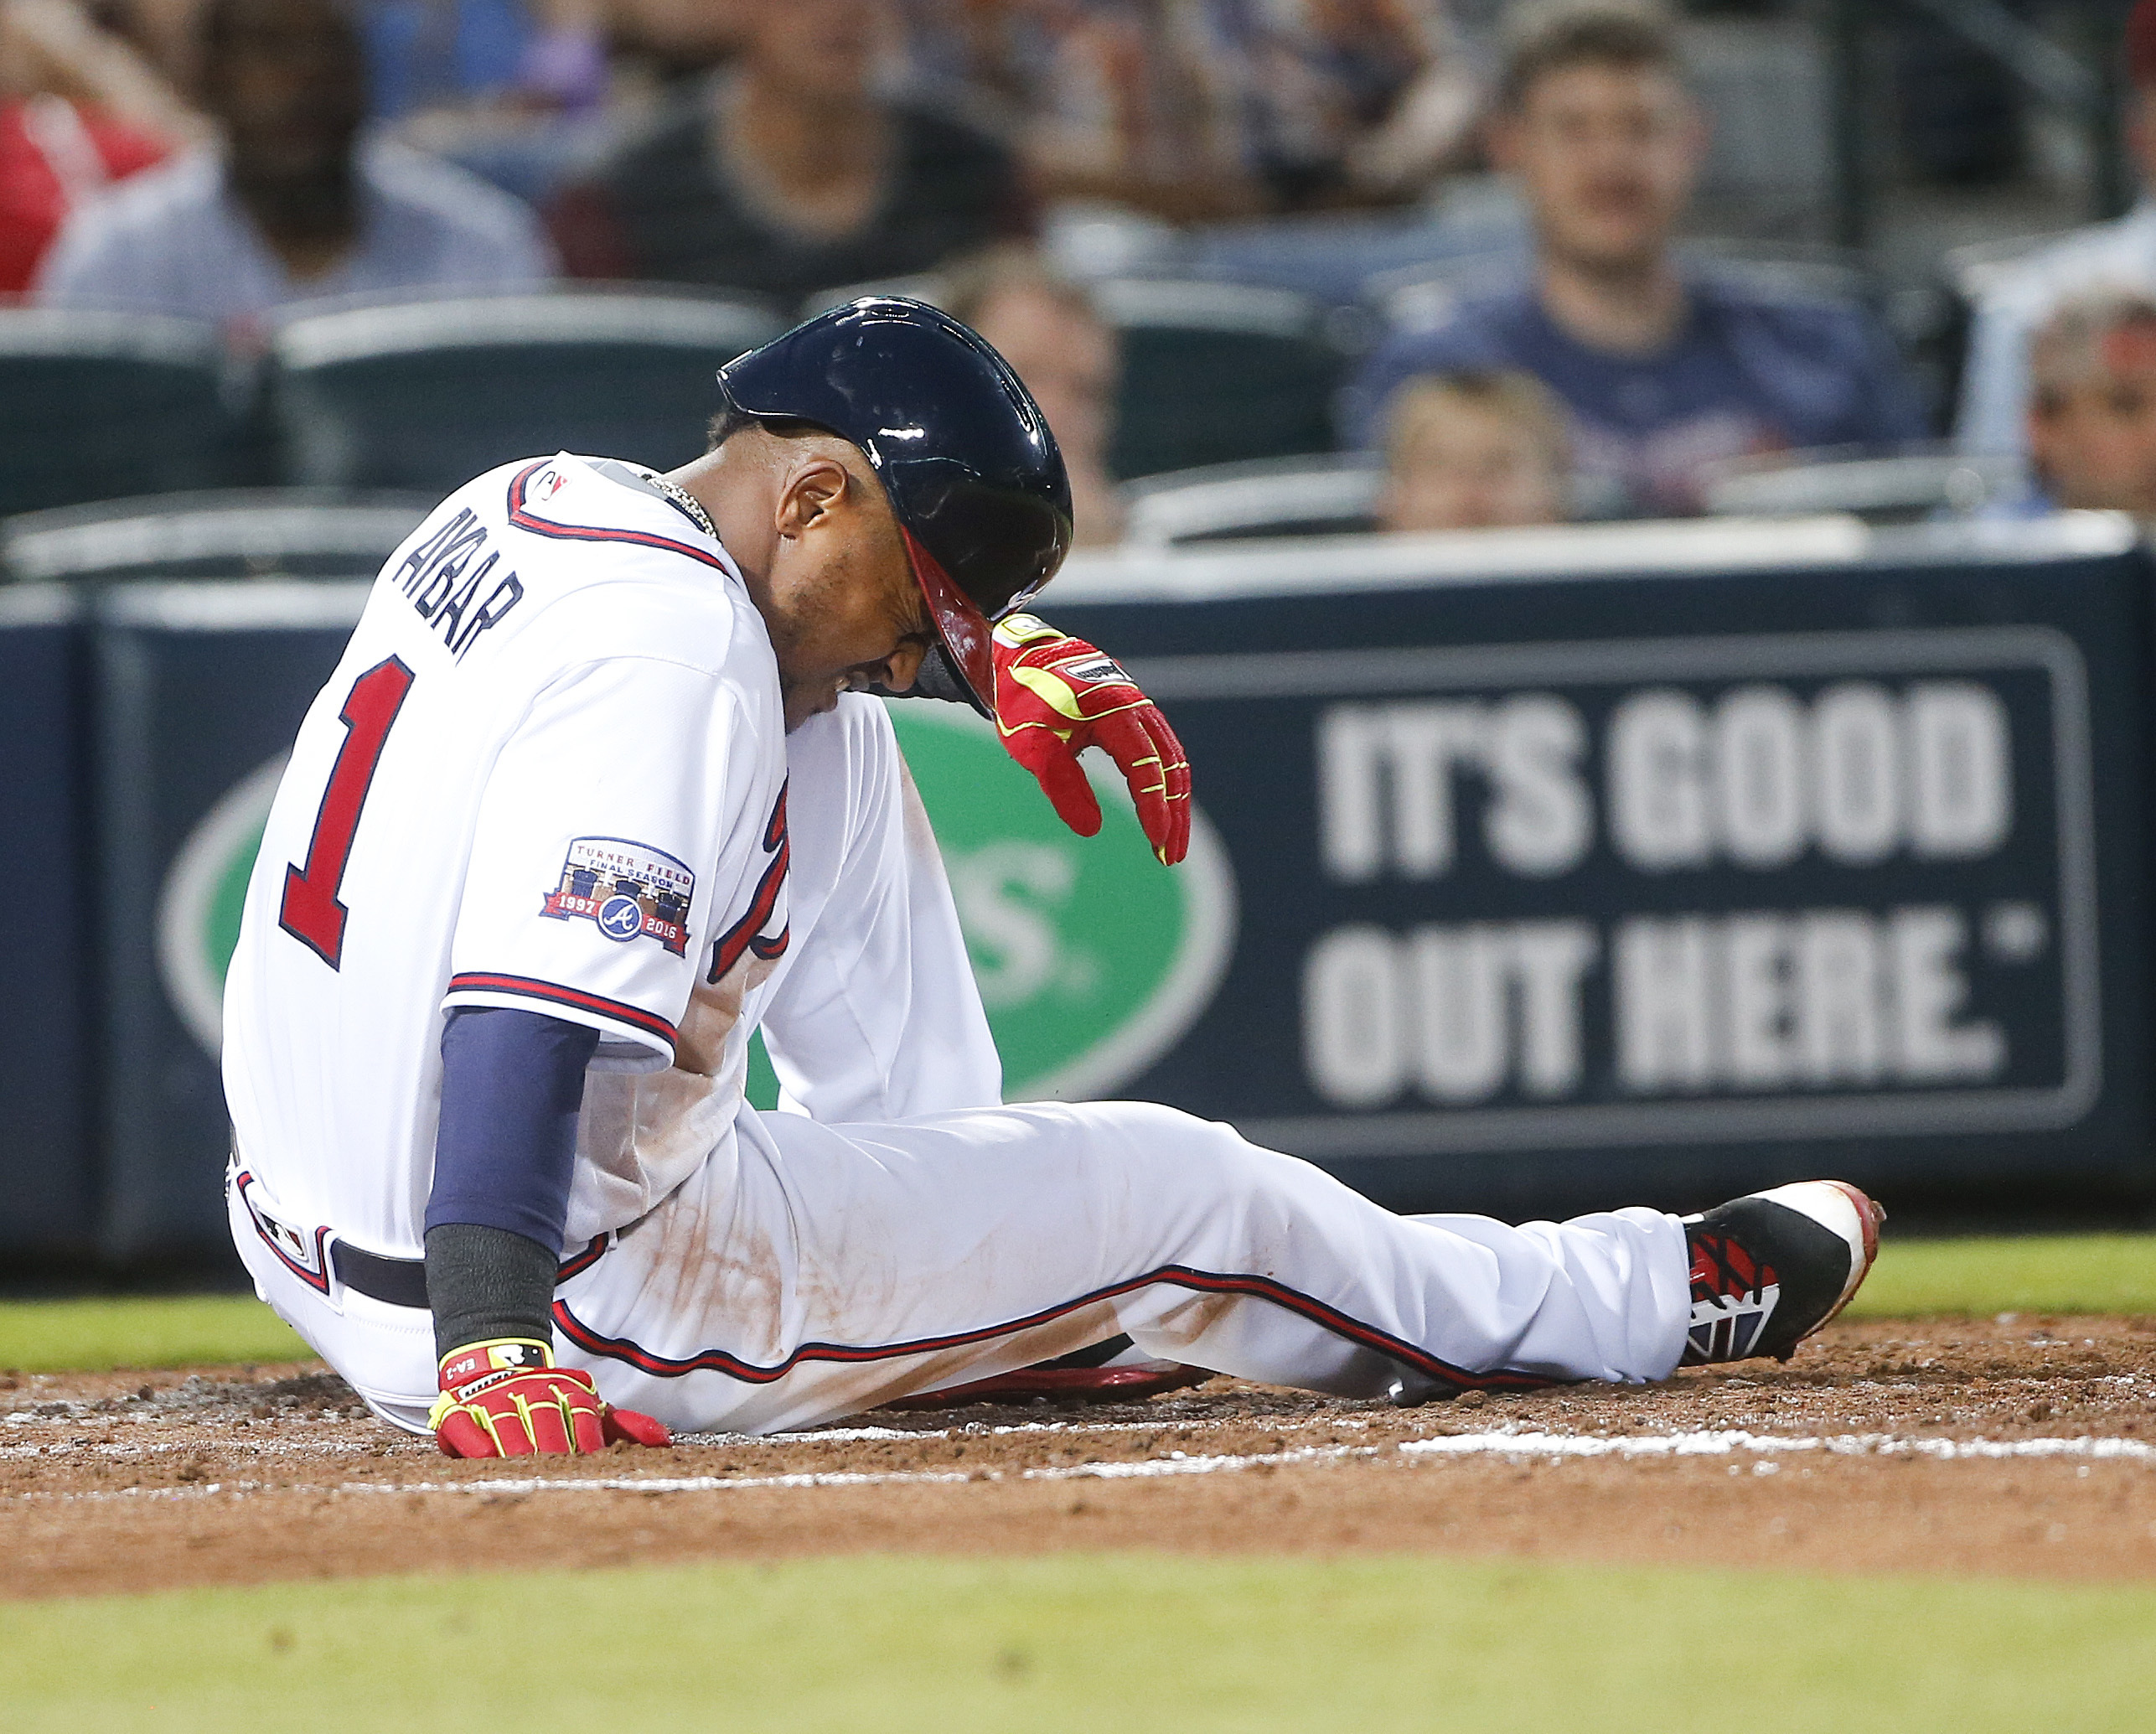 Atlanta Braves shortstop Erick Aybar (1) waits for help from the training staff after being hit by a pitch from Miami Marlins starter Adam Conley in the fourth inning of a baseball game Friday, May 27, 2016, in Atlanta. (AP Photo/John Bazemore)